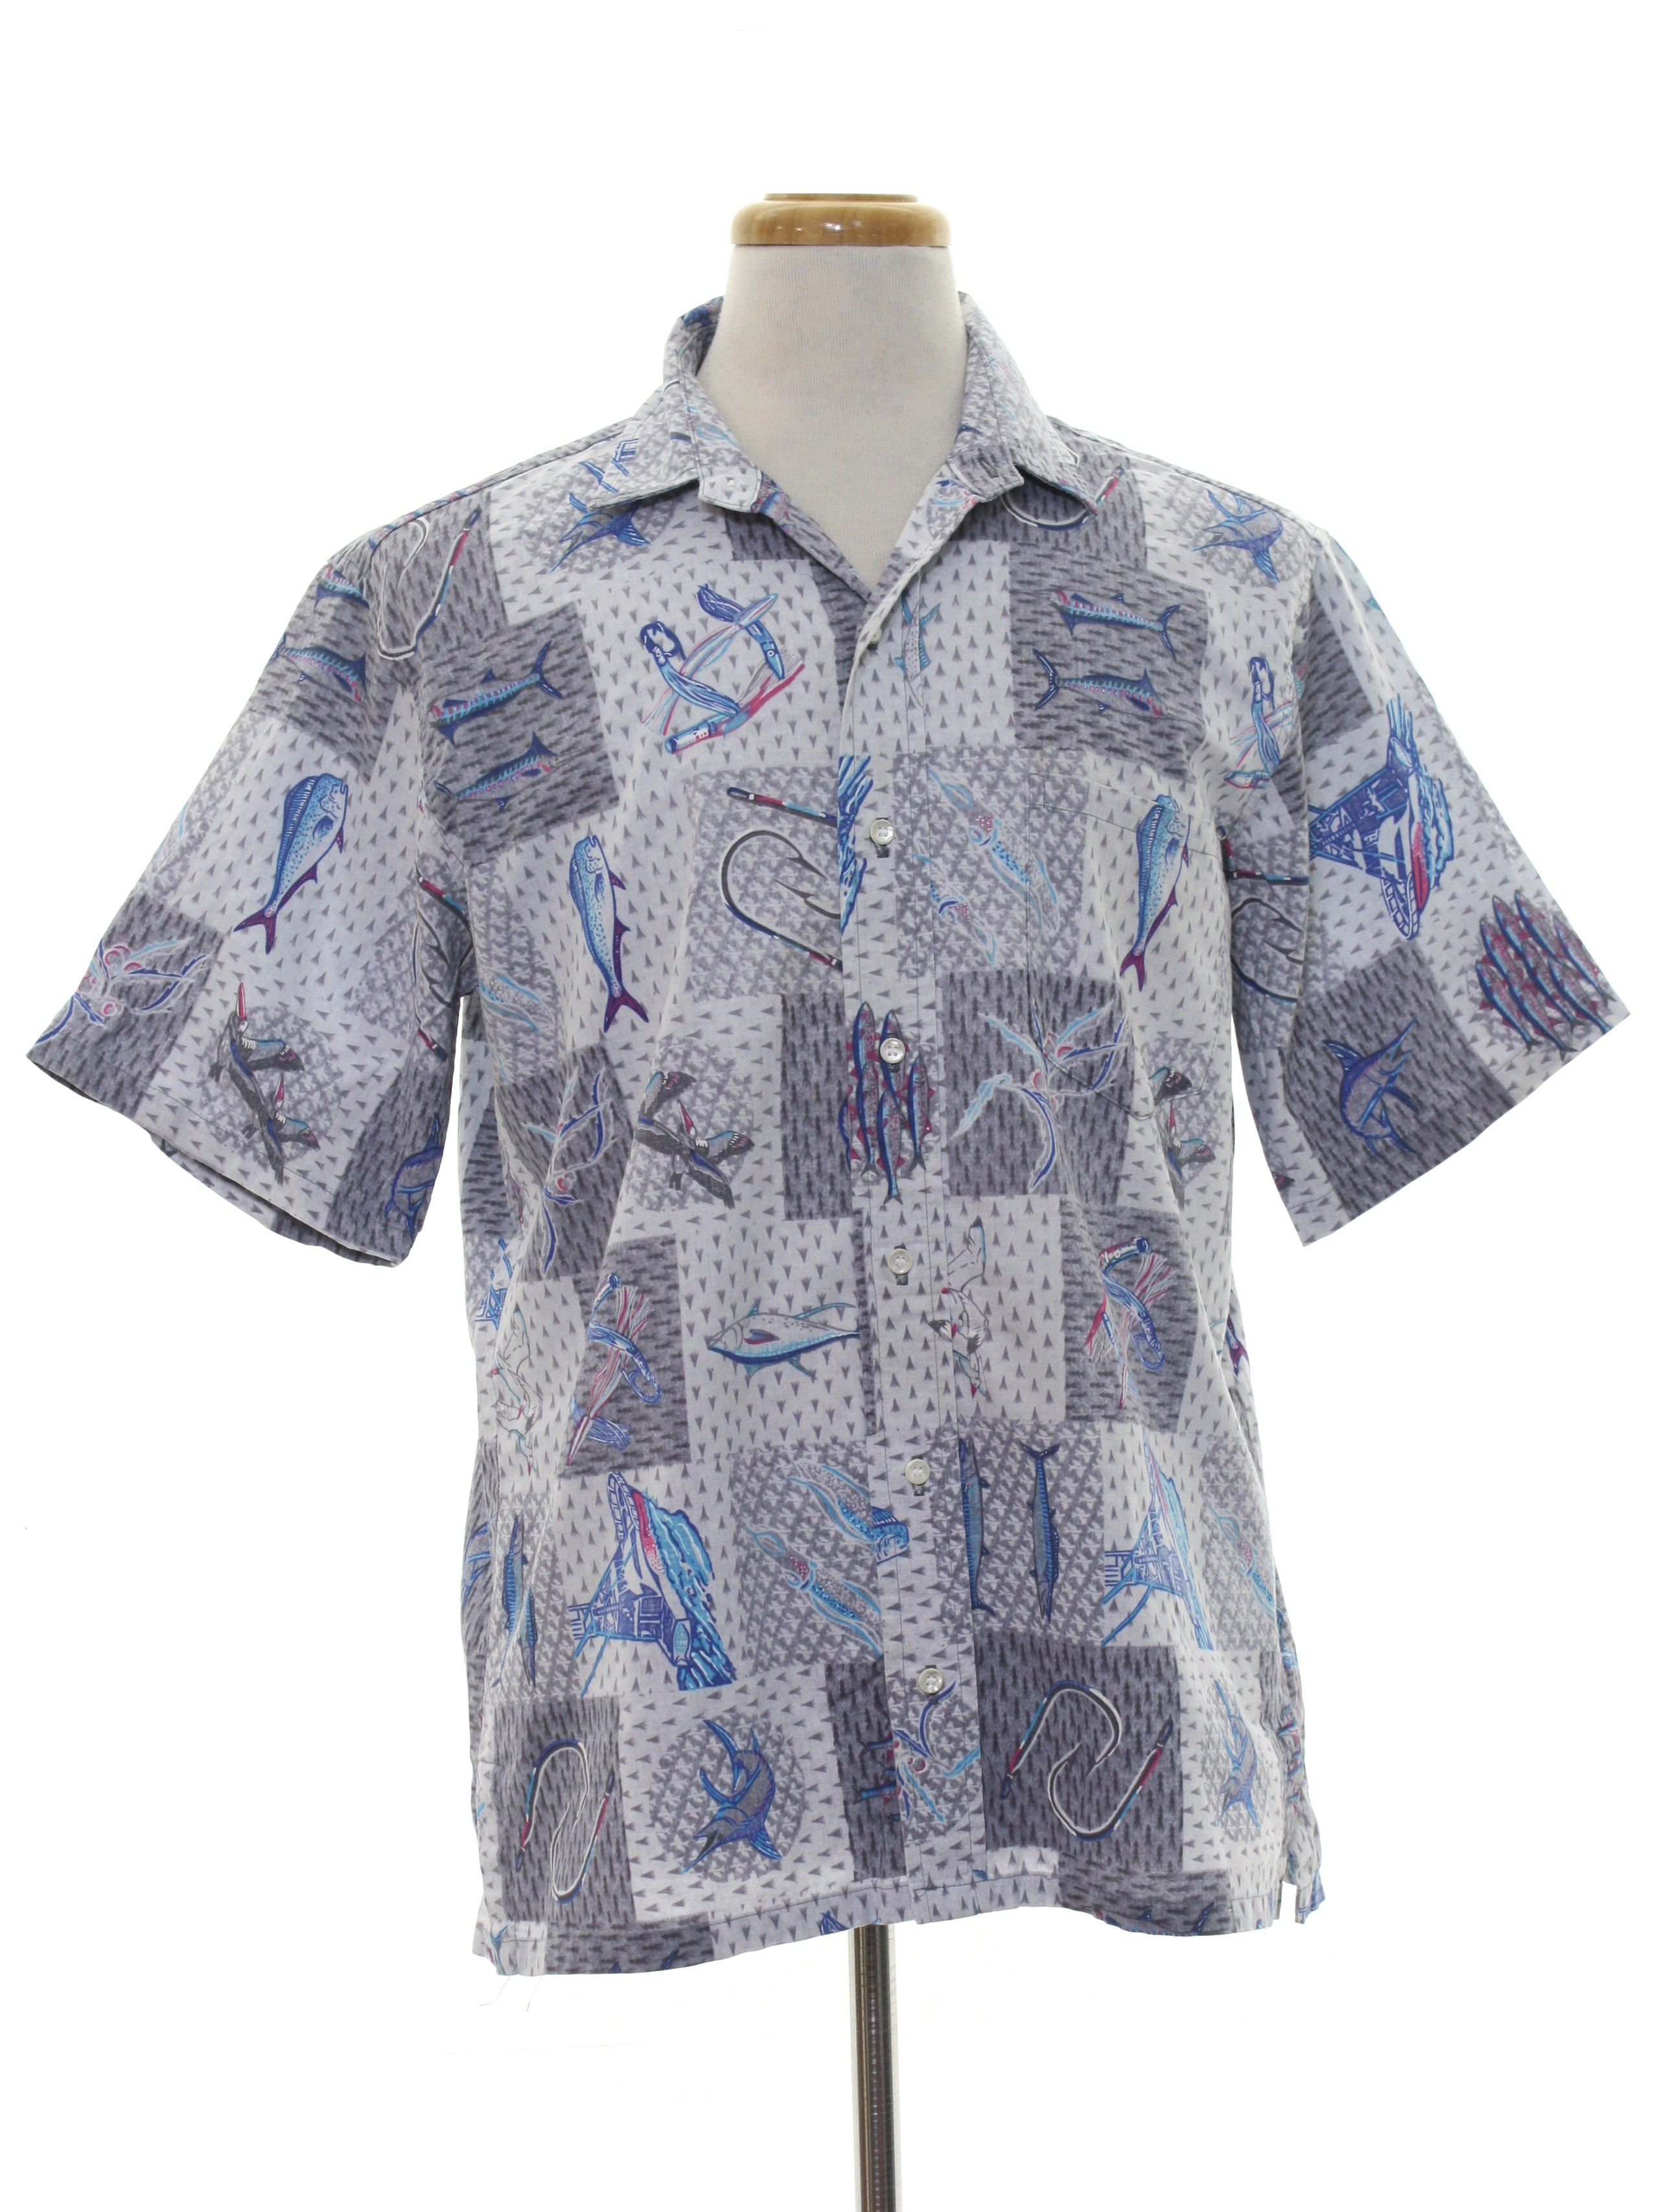 16dd3891 Vintage Blue Water Wear Eighties Hawaiian Shirt: 80s -Blue Water ...